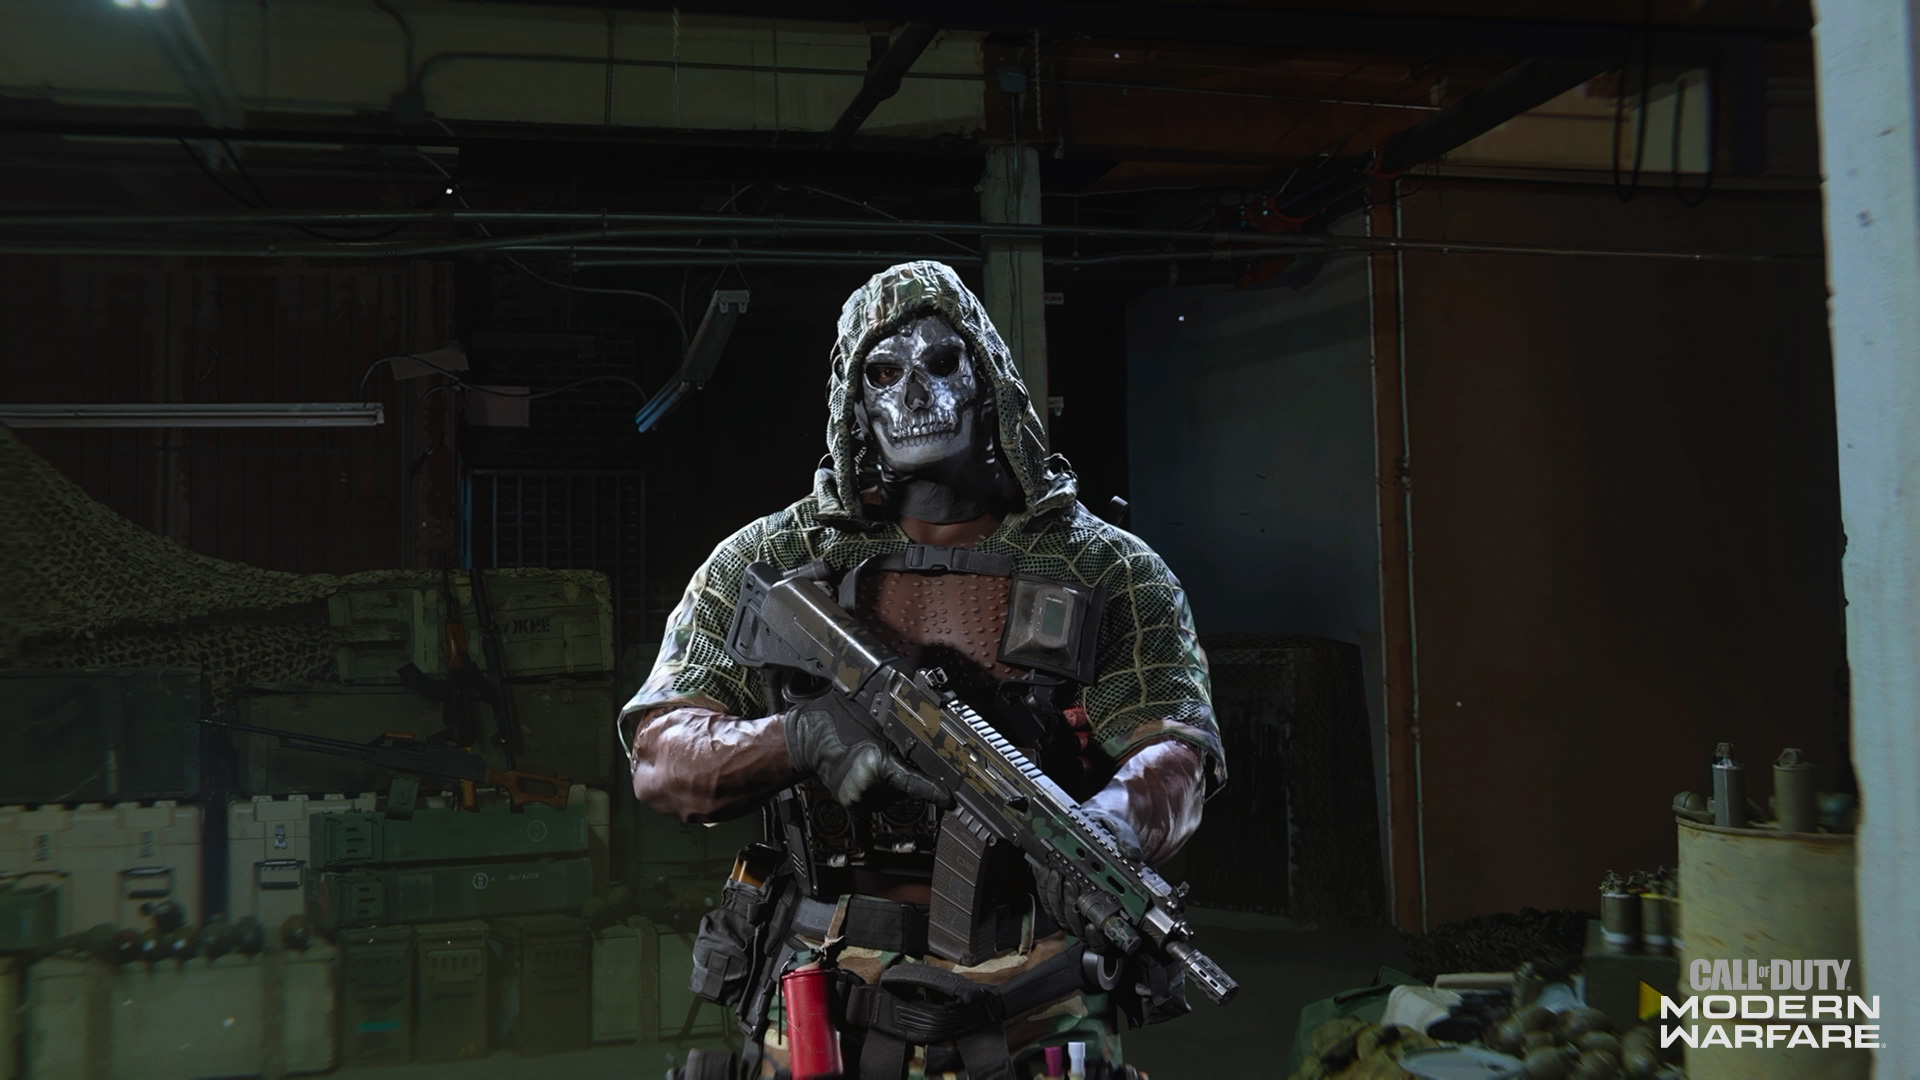 Modern Warfare, Including Warzone – A Store Bundle Refresh Featuring Mace! - Image 5